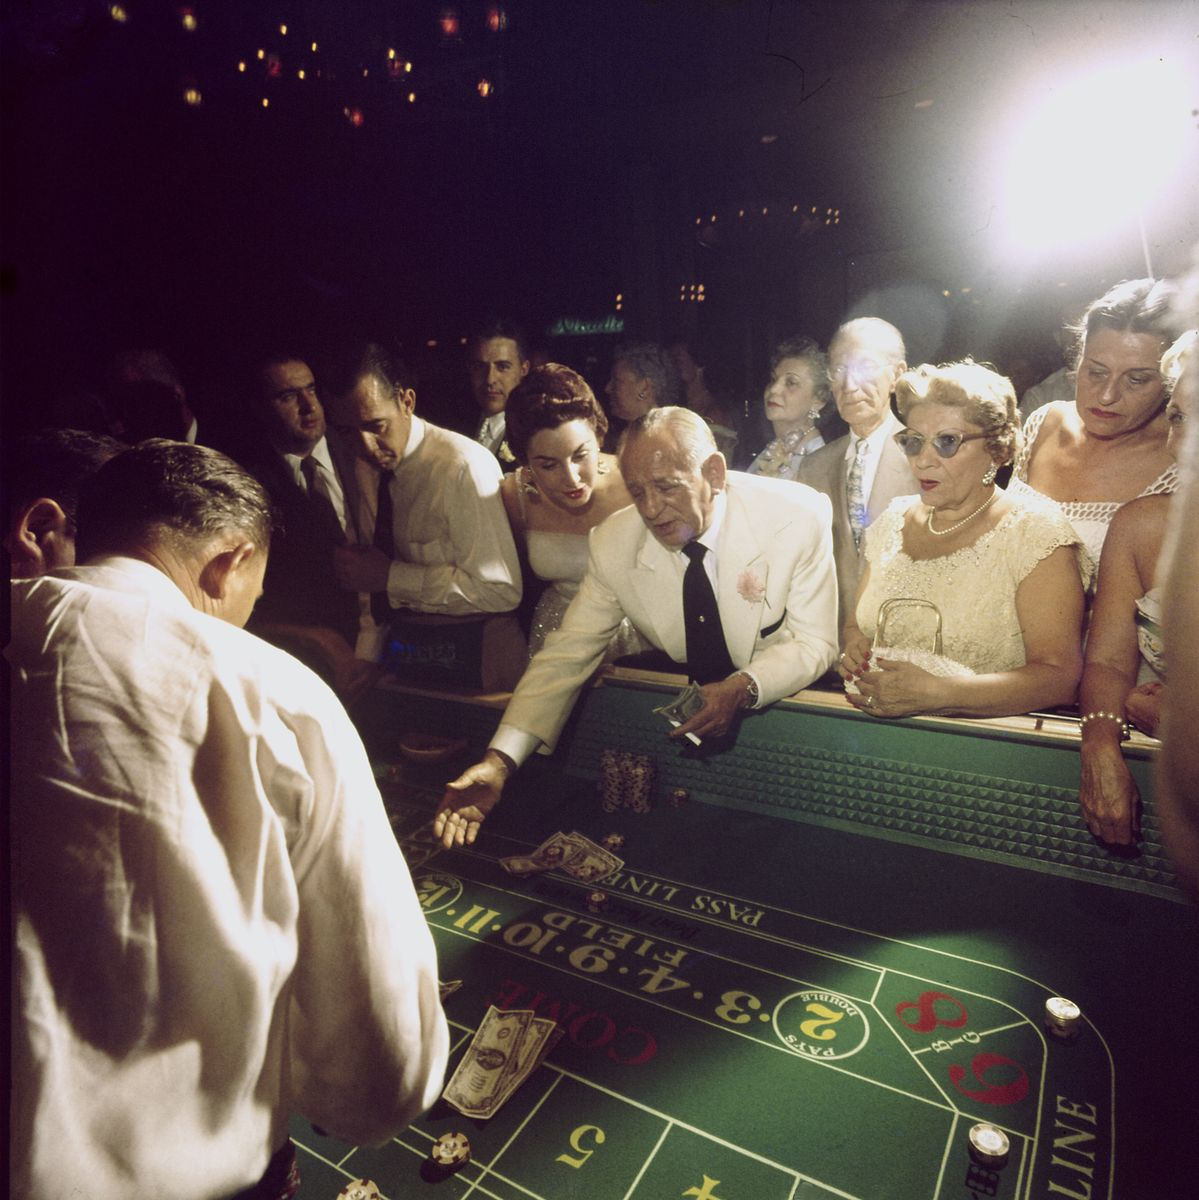 Slide 7 of 50: Hotel owner Jake Freedman rolls dice at a craps table at the Dunes in 1955. The casino closed one year after Freedman bought it.